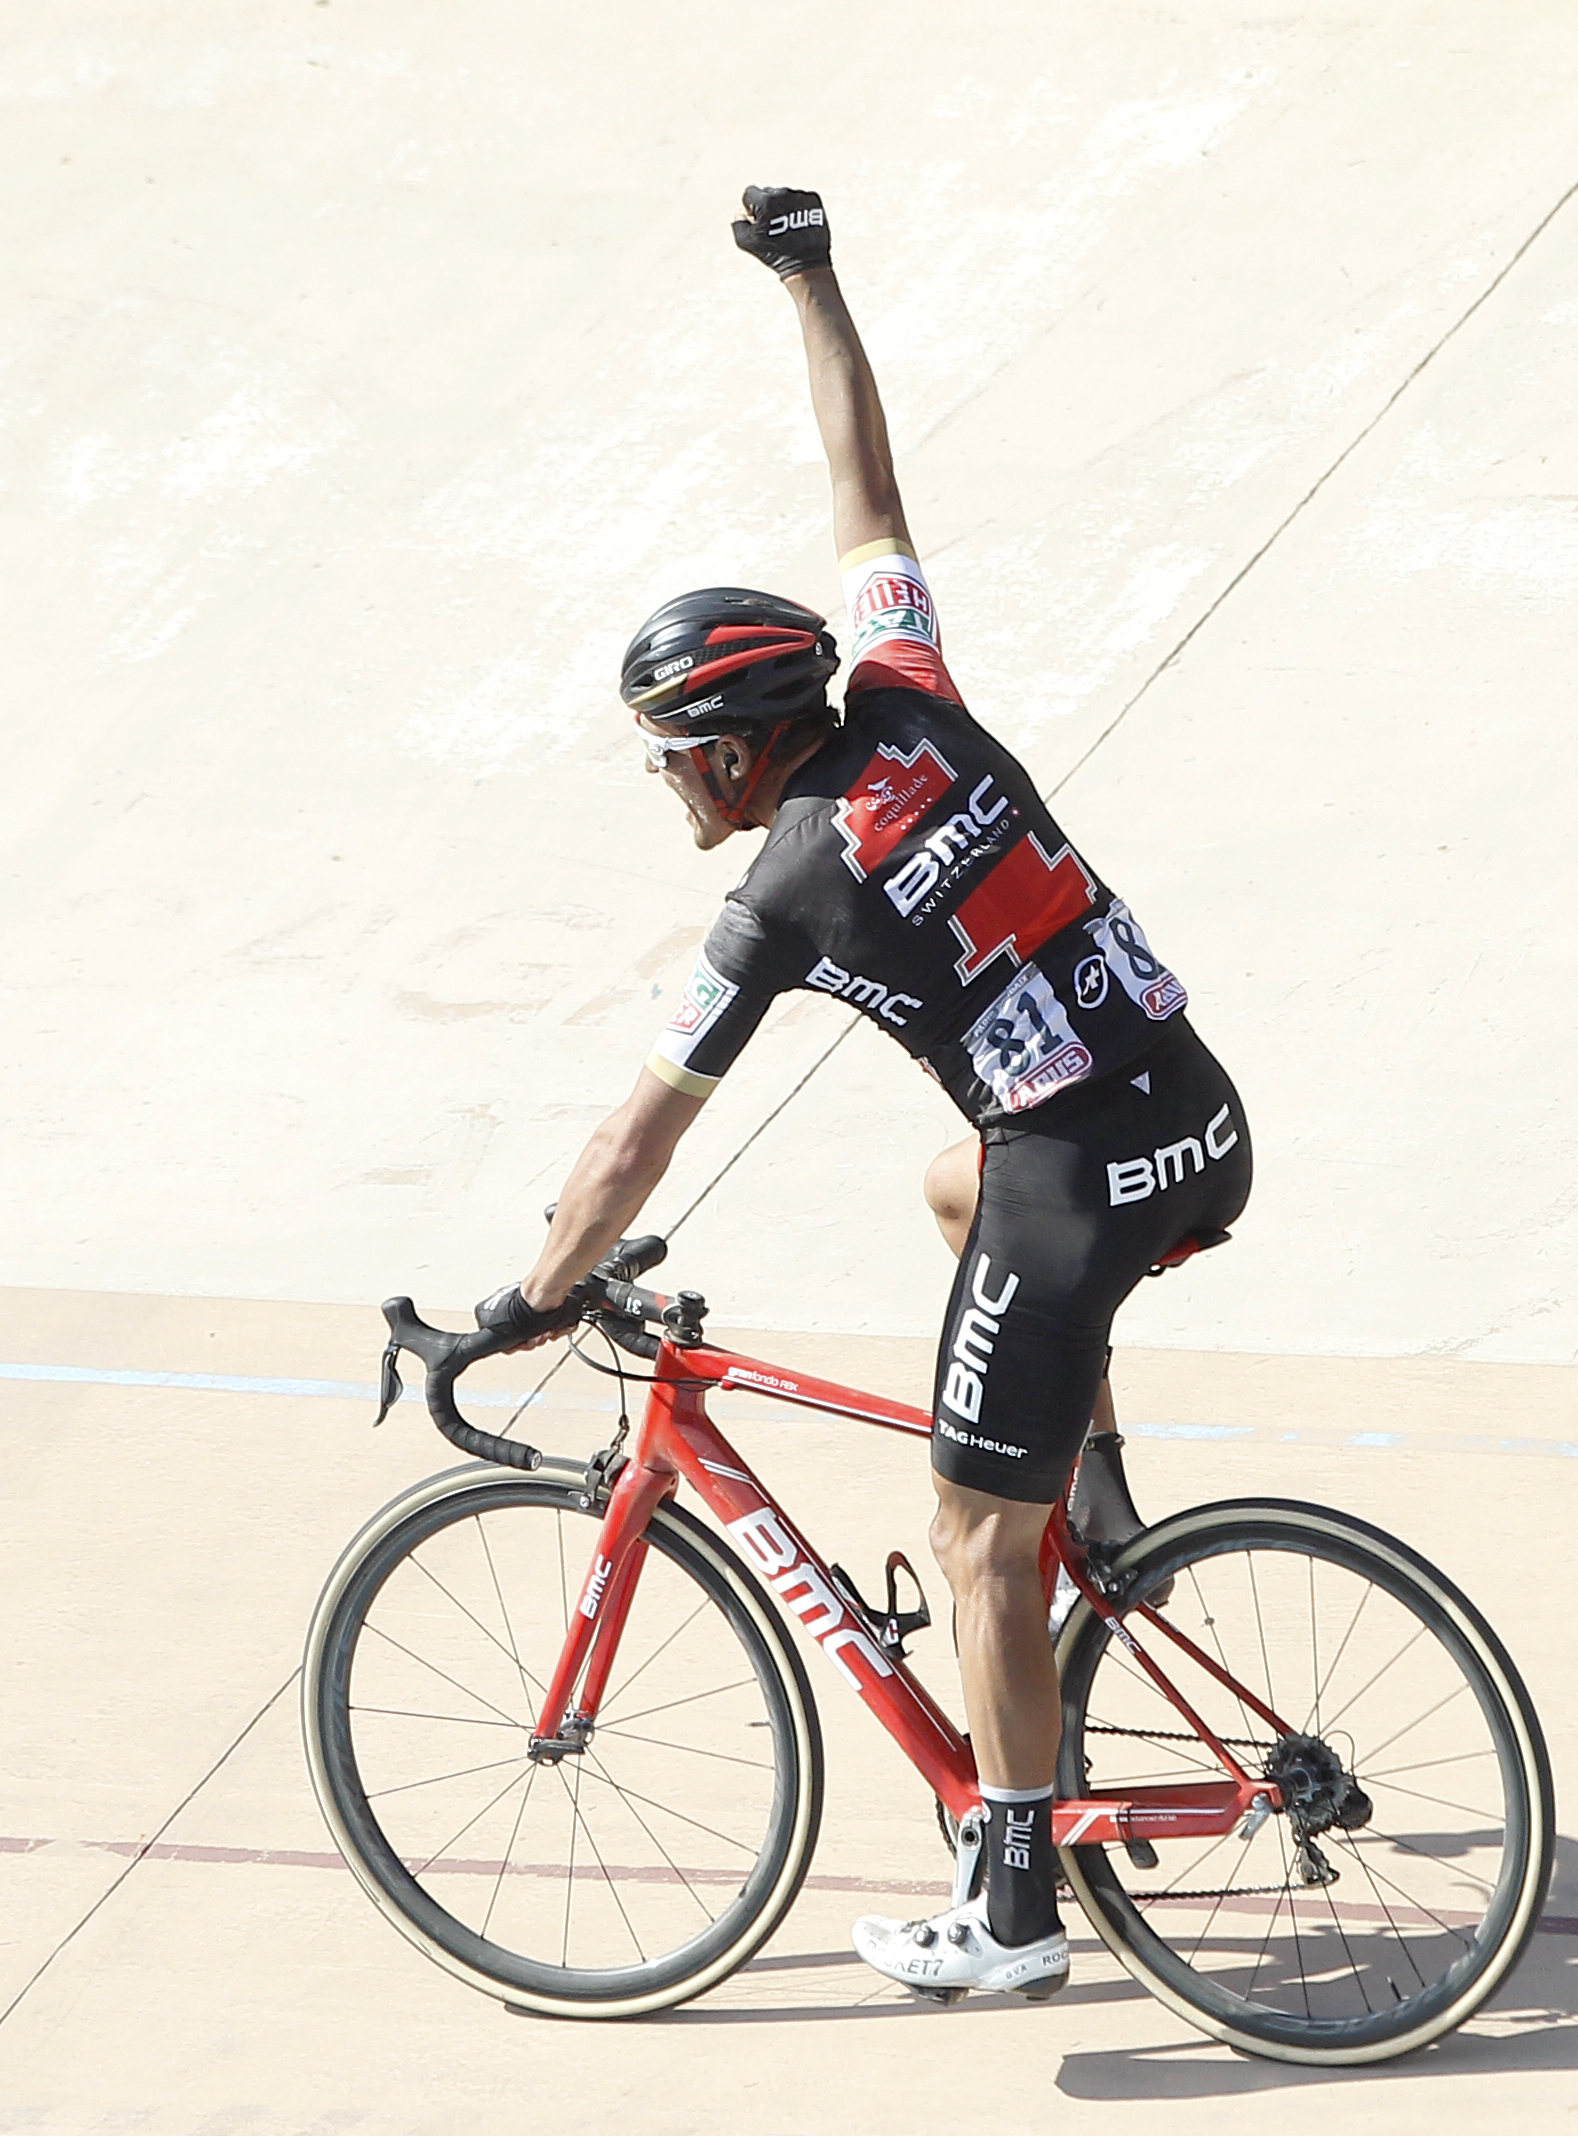 Greg Van Avermaet of Belgium celebrates on winning the 115th edition of the Paris-Roubaix cycling classic, a 257,5 kilometer (160 mile) one day race, with about 20 per cent of the distance run on cobblestones, at the velodrome in Roubaix, northern France,